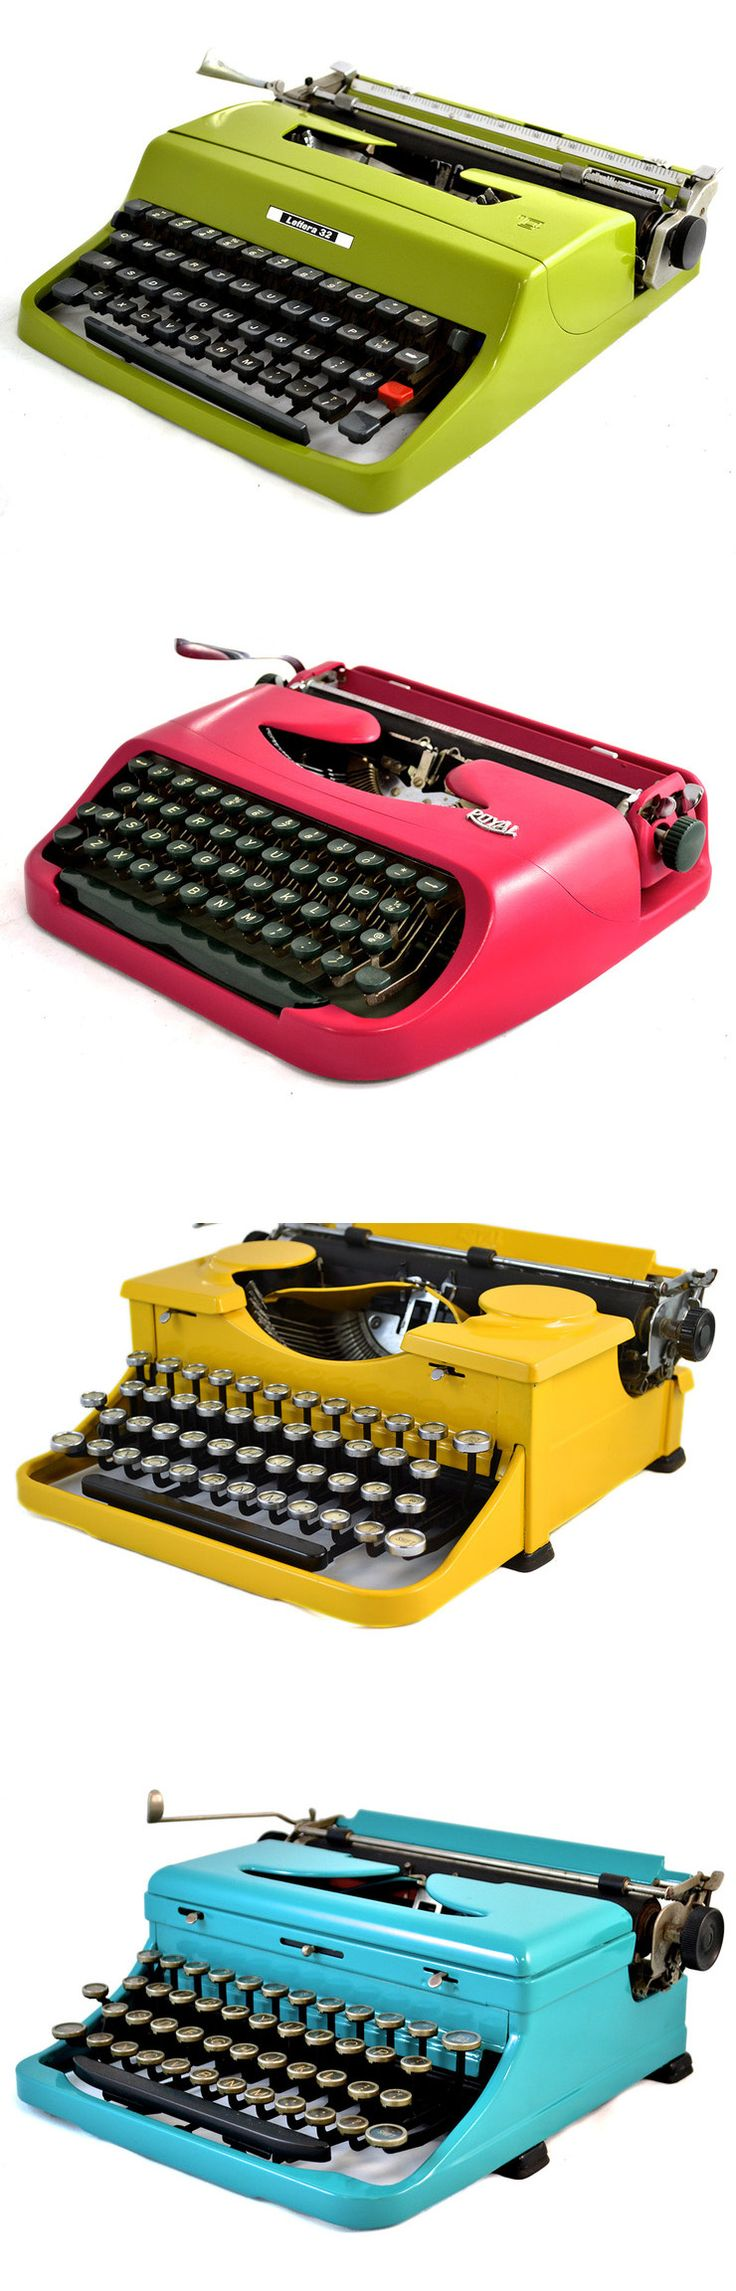 Oh aren't these pretty! A little impractical for typing in entries to our database, perhaps, but oh so lovely.